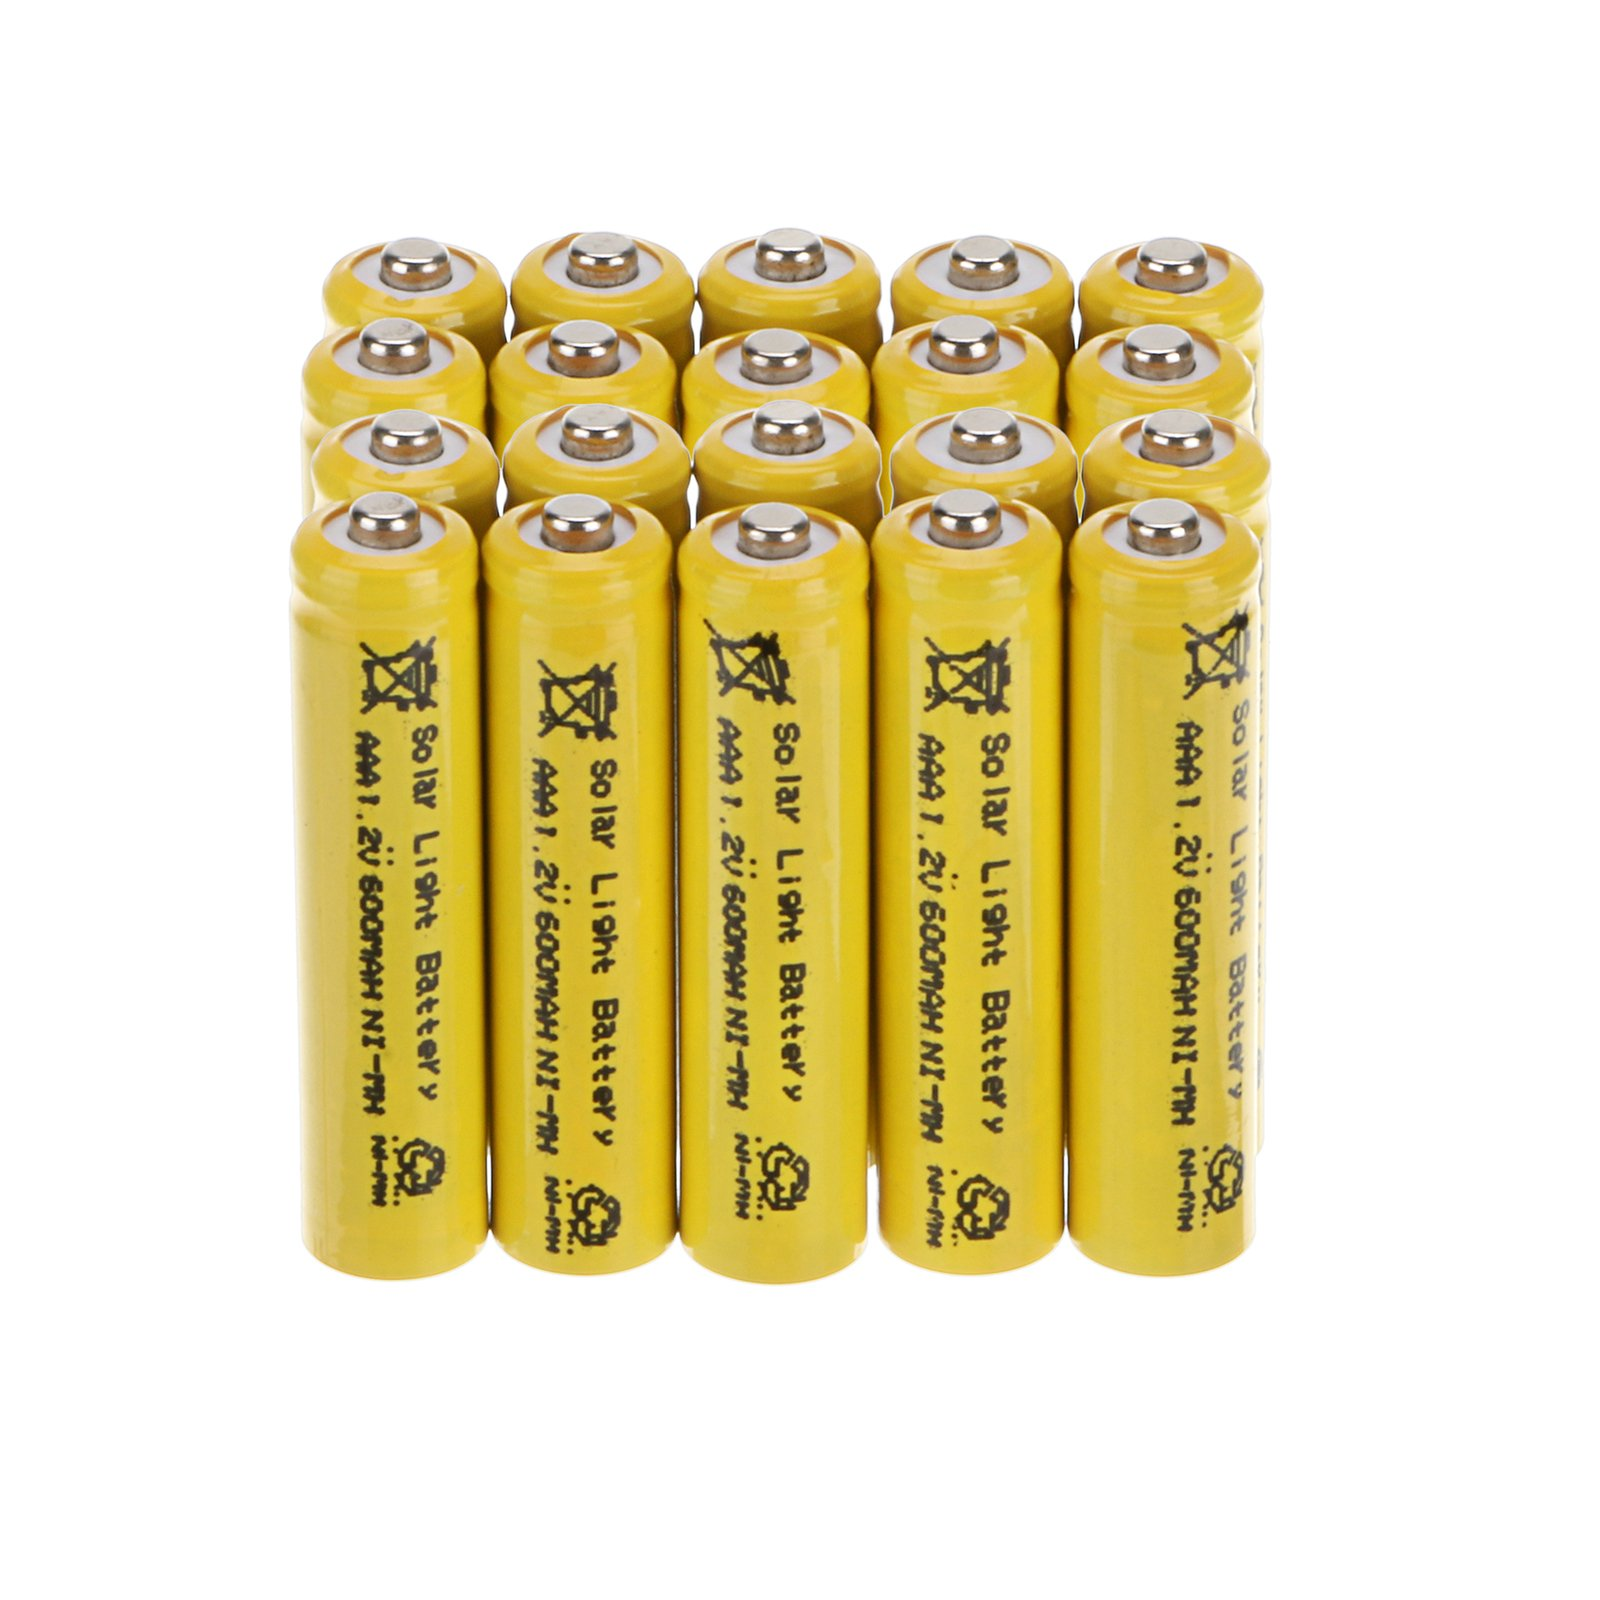 Windmax Yellow 15 PCS 3A AAA 1.2V 600mAh Rechargeable Battery White NiMH 3A batteries for Solar Light